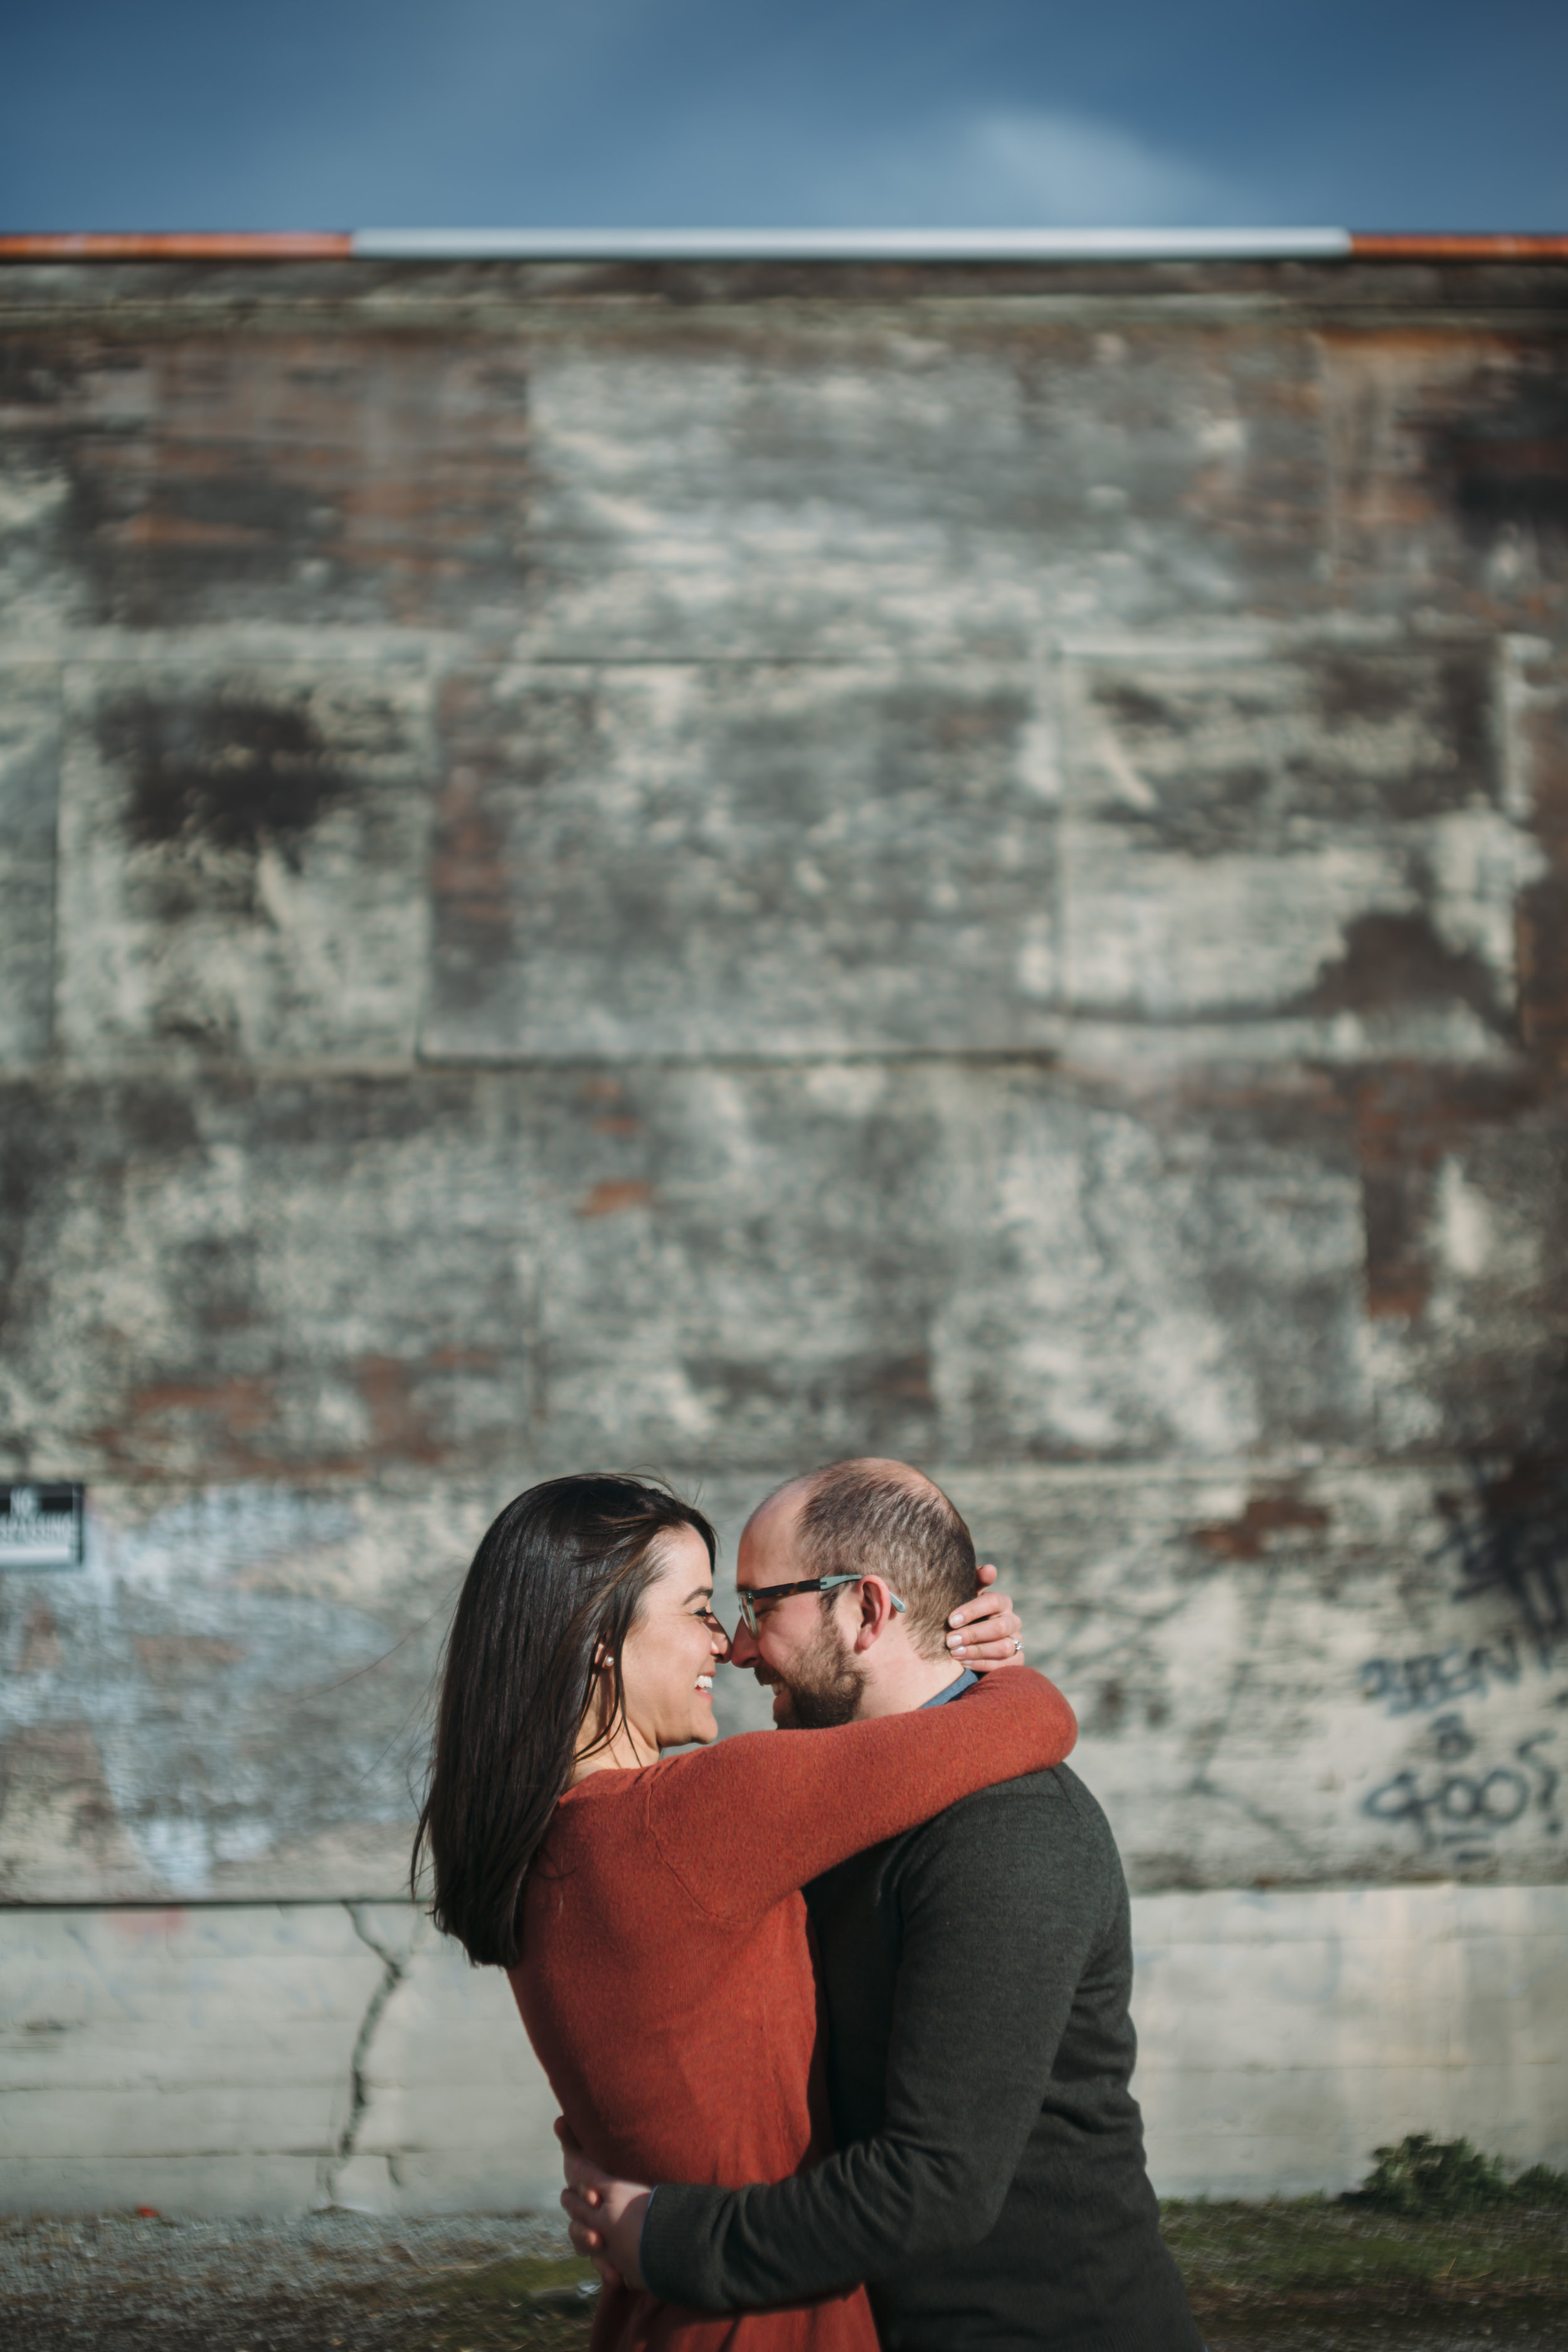 Erica & Nate  - This couple I hold near and dear to my heart. Not only have I known Erica since she was 3, but she has found a love that keeps her giggling, happy and cared for. They are getting married this Summer and I think we both were equally excited to shoot with each other. She has been a huge supporter in my life and spending the day with them was not work. It was fun. And watching them interact in front of the camera was like seeing another glimpse into their love. They LAUGH. A LOT. Their energy is already on the same wave length and their smiles are infectious. Ah it was such a good day.